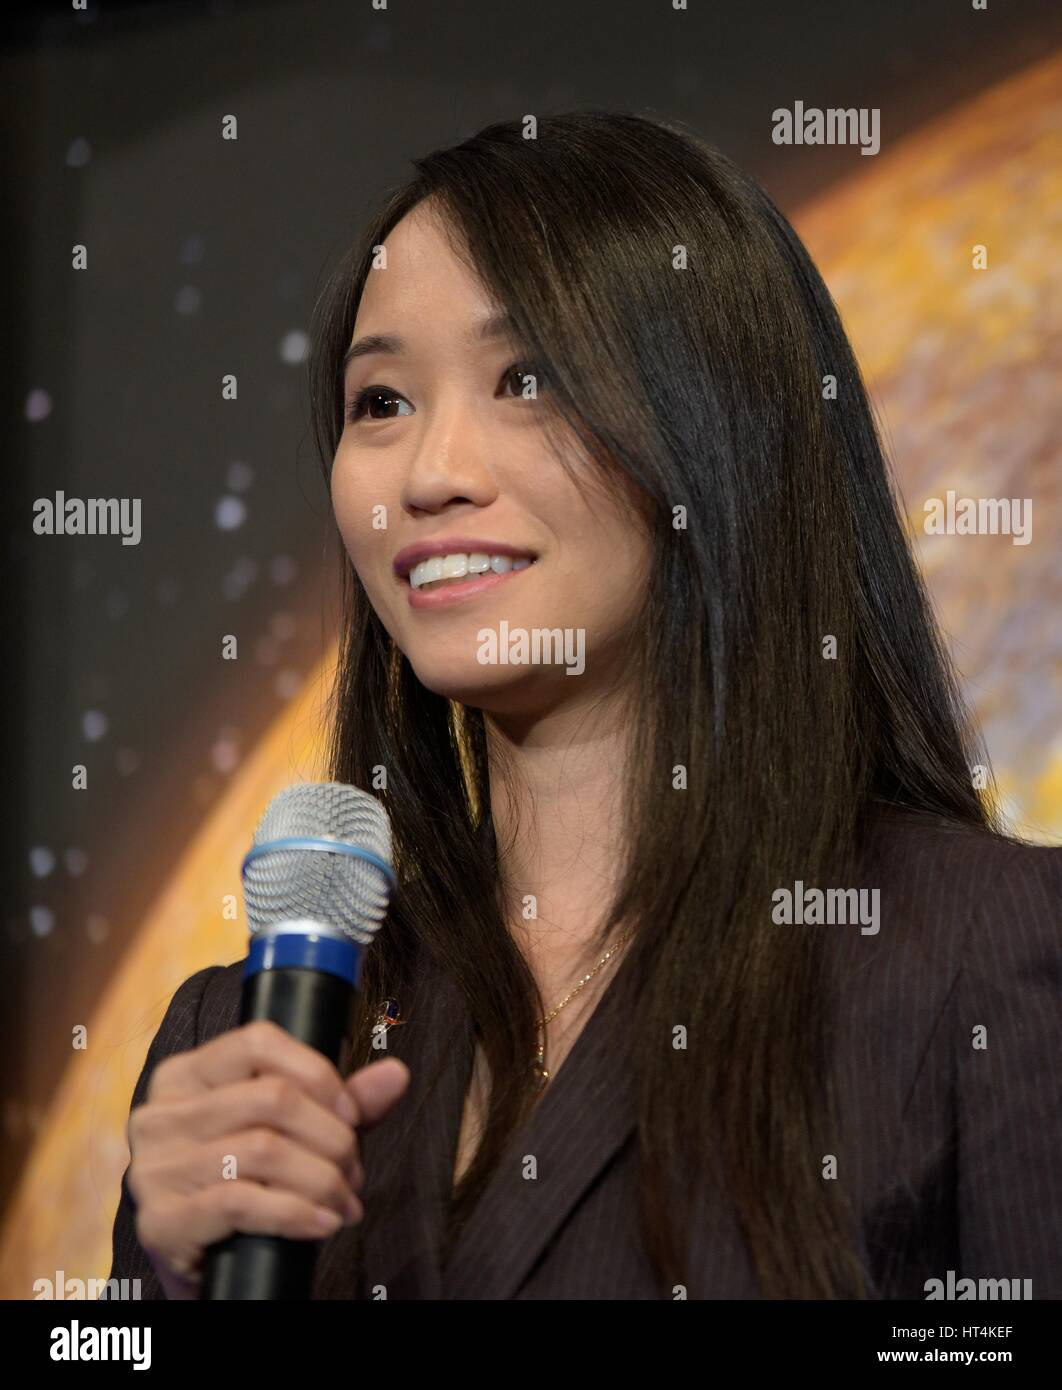 NASA Public Affairs Officer Felicia Chou moderates a TRAPPIST-1 planets briefing at the NASA Headquarters February - Stock Image